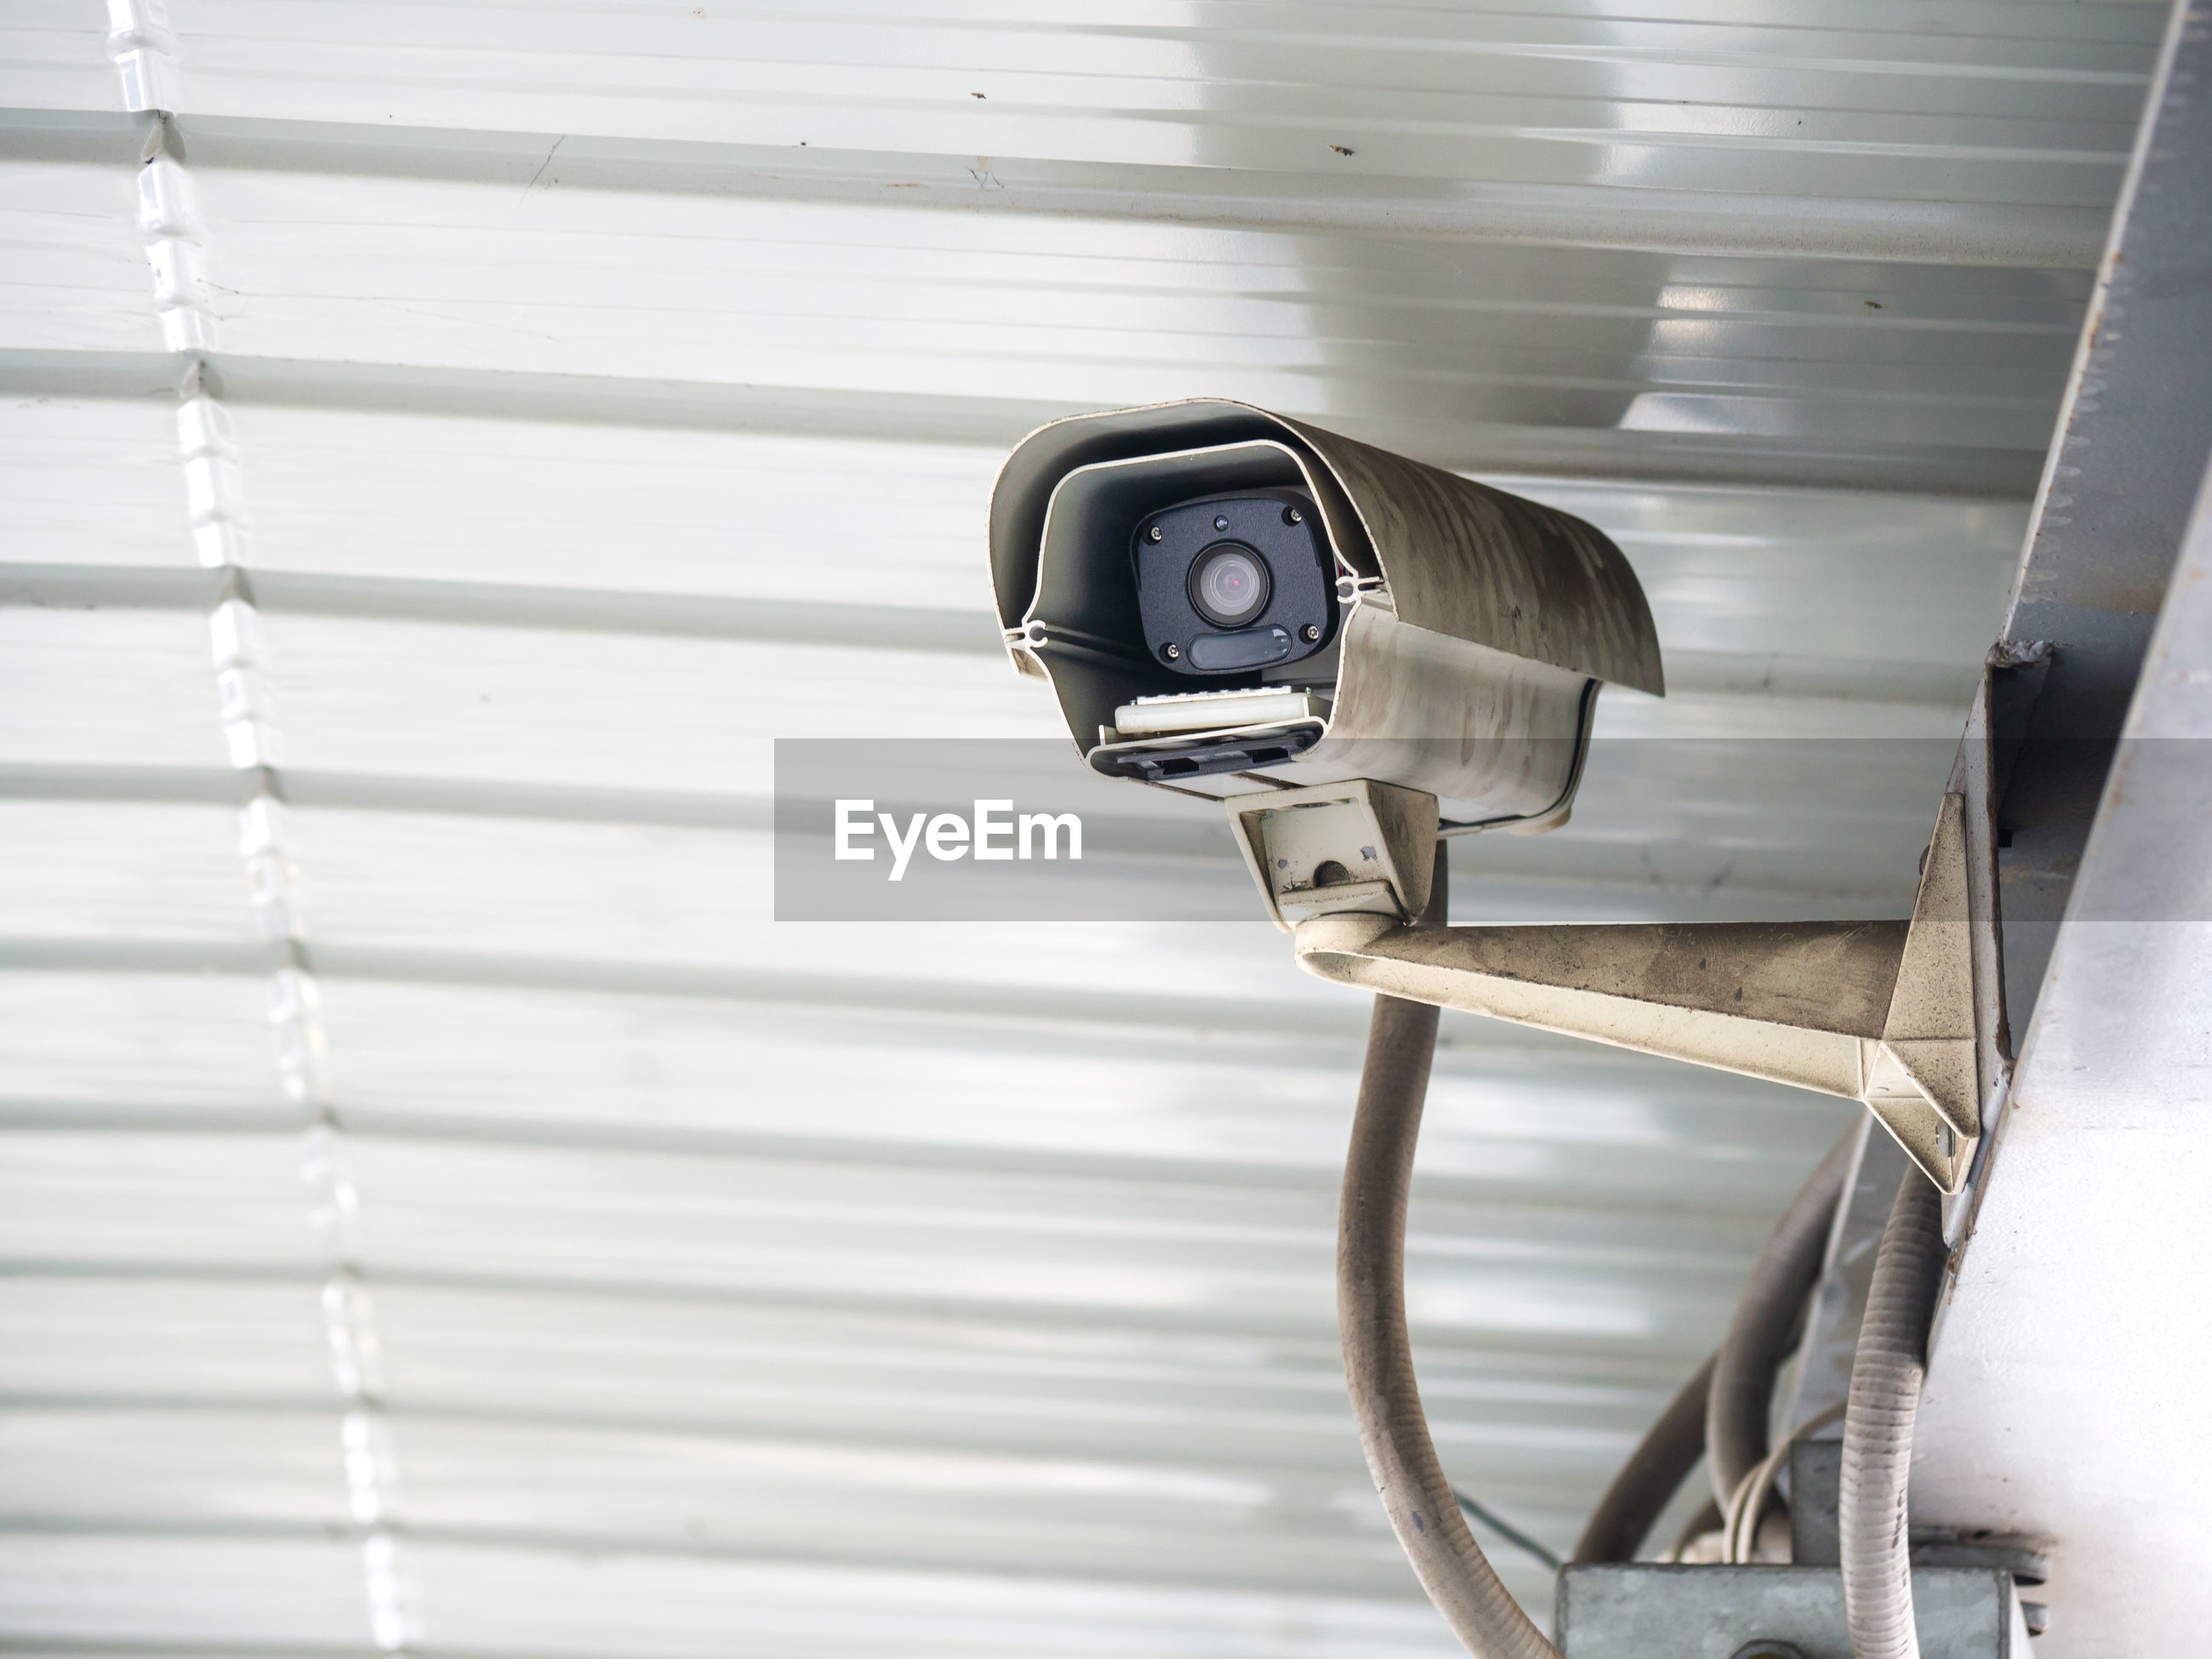 Low angle view of security camera on roof